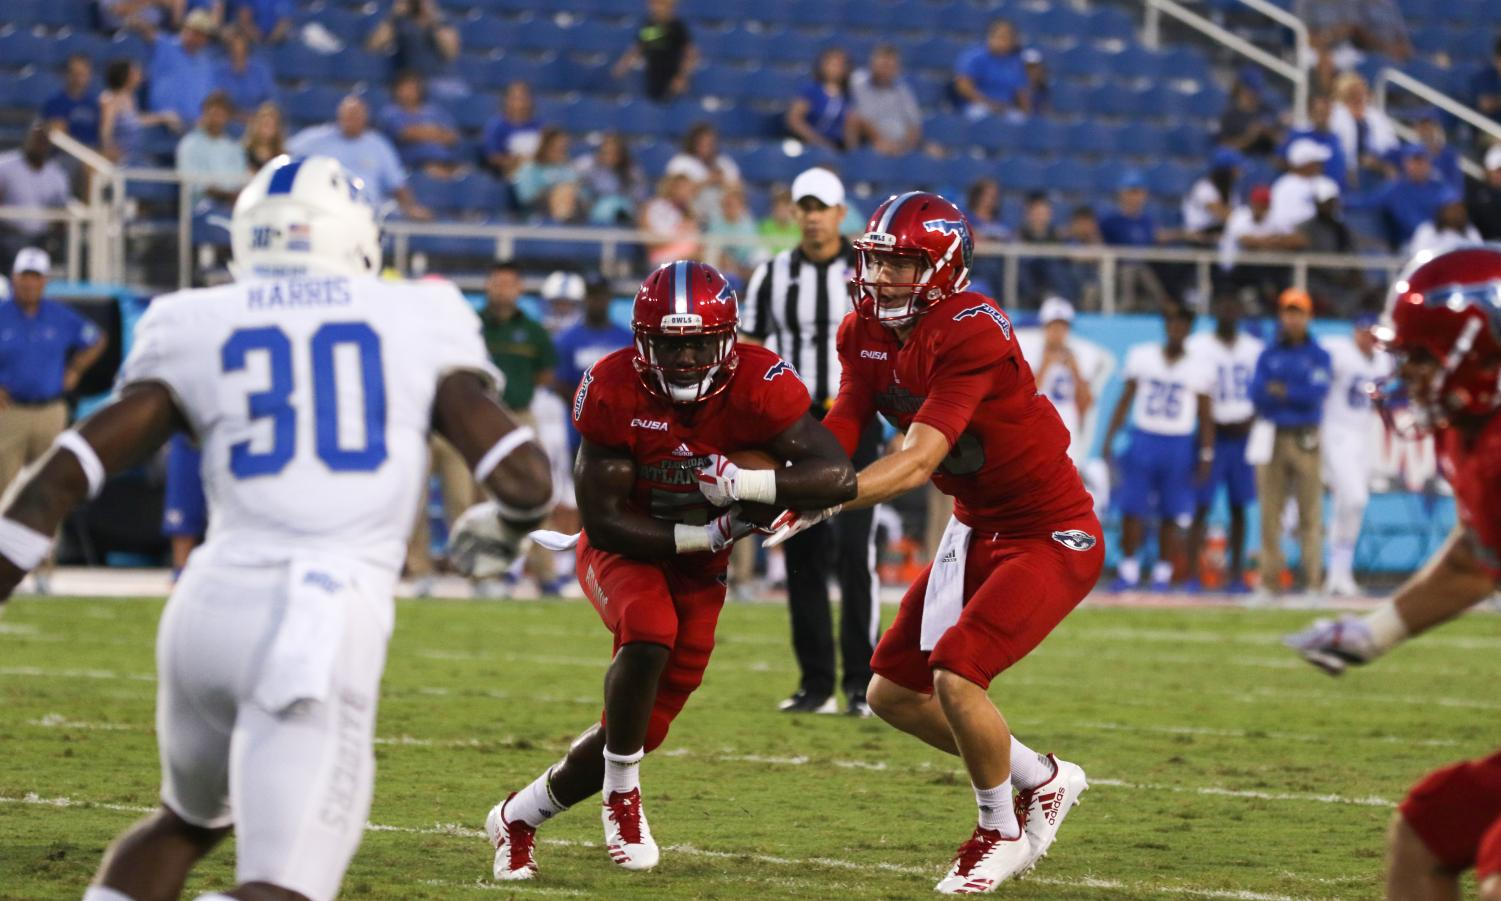 FAU redshirt junior quarterback Jason Driskel (16) passes the football off to sophomore running back Devin Singletary (5) during the Owls 39-20 win over Middle Tennessee State on Oct. 7. Joshua Giron | Contributing Photographer